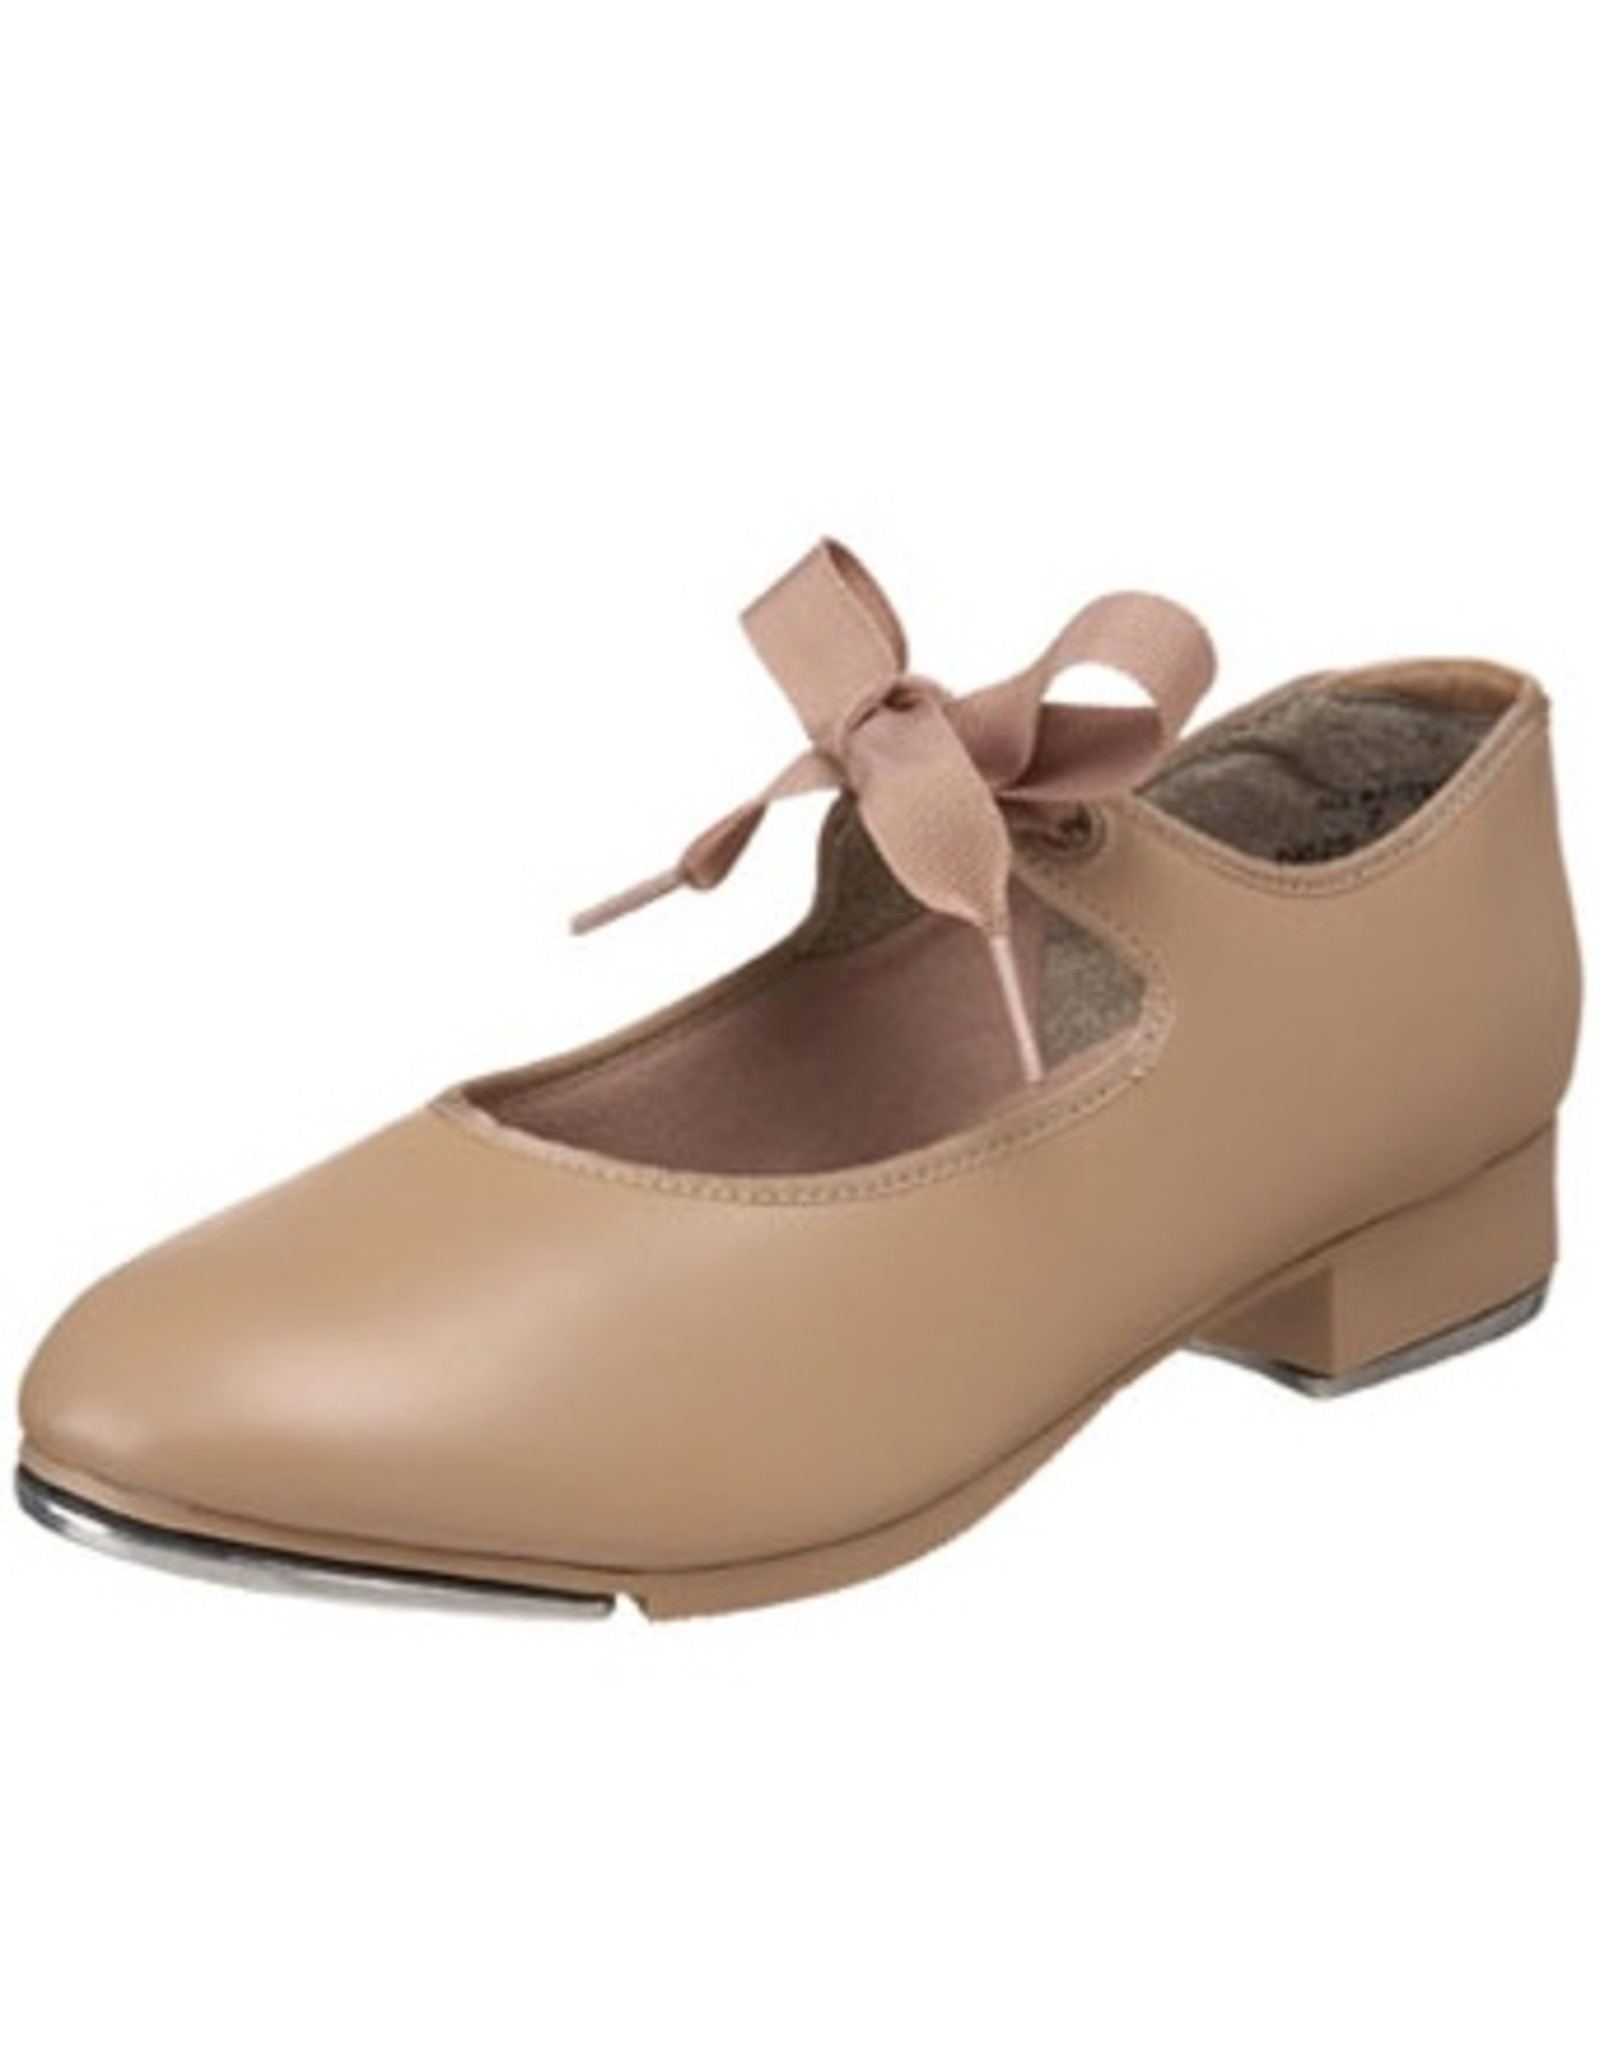 Capezio JR Tyette Child